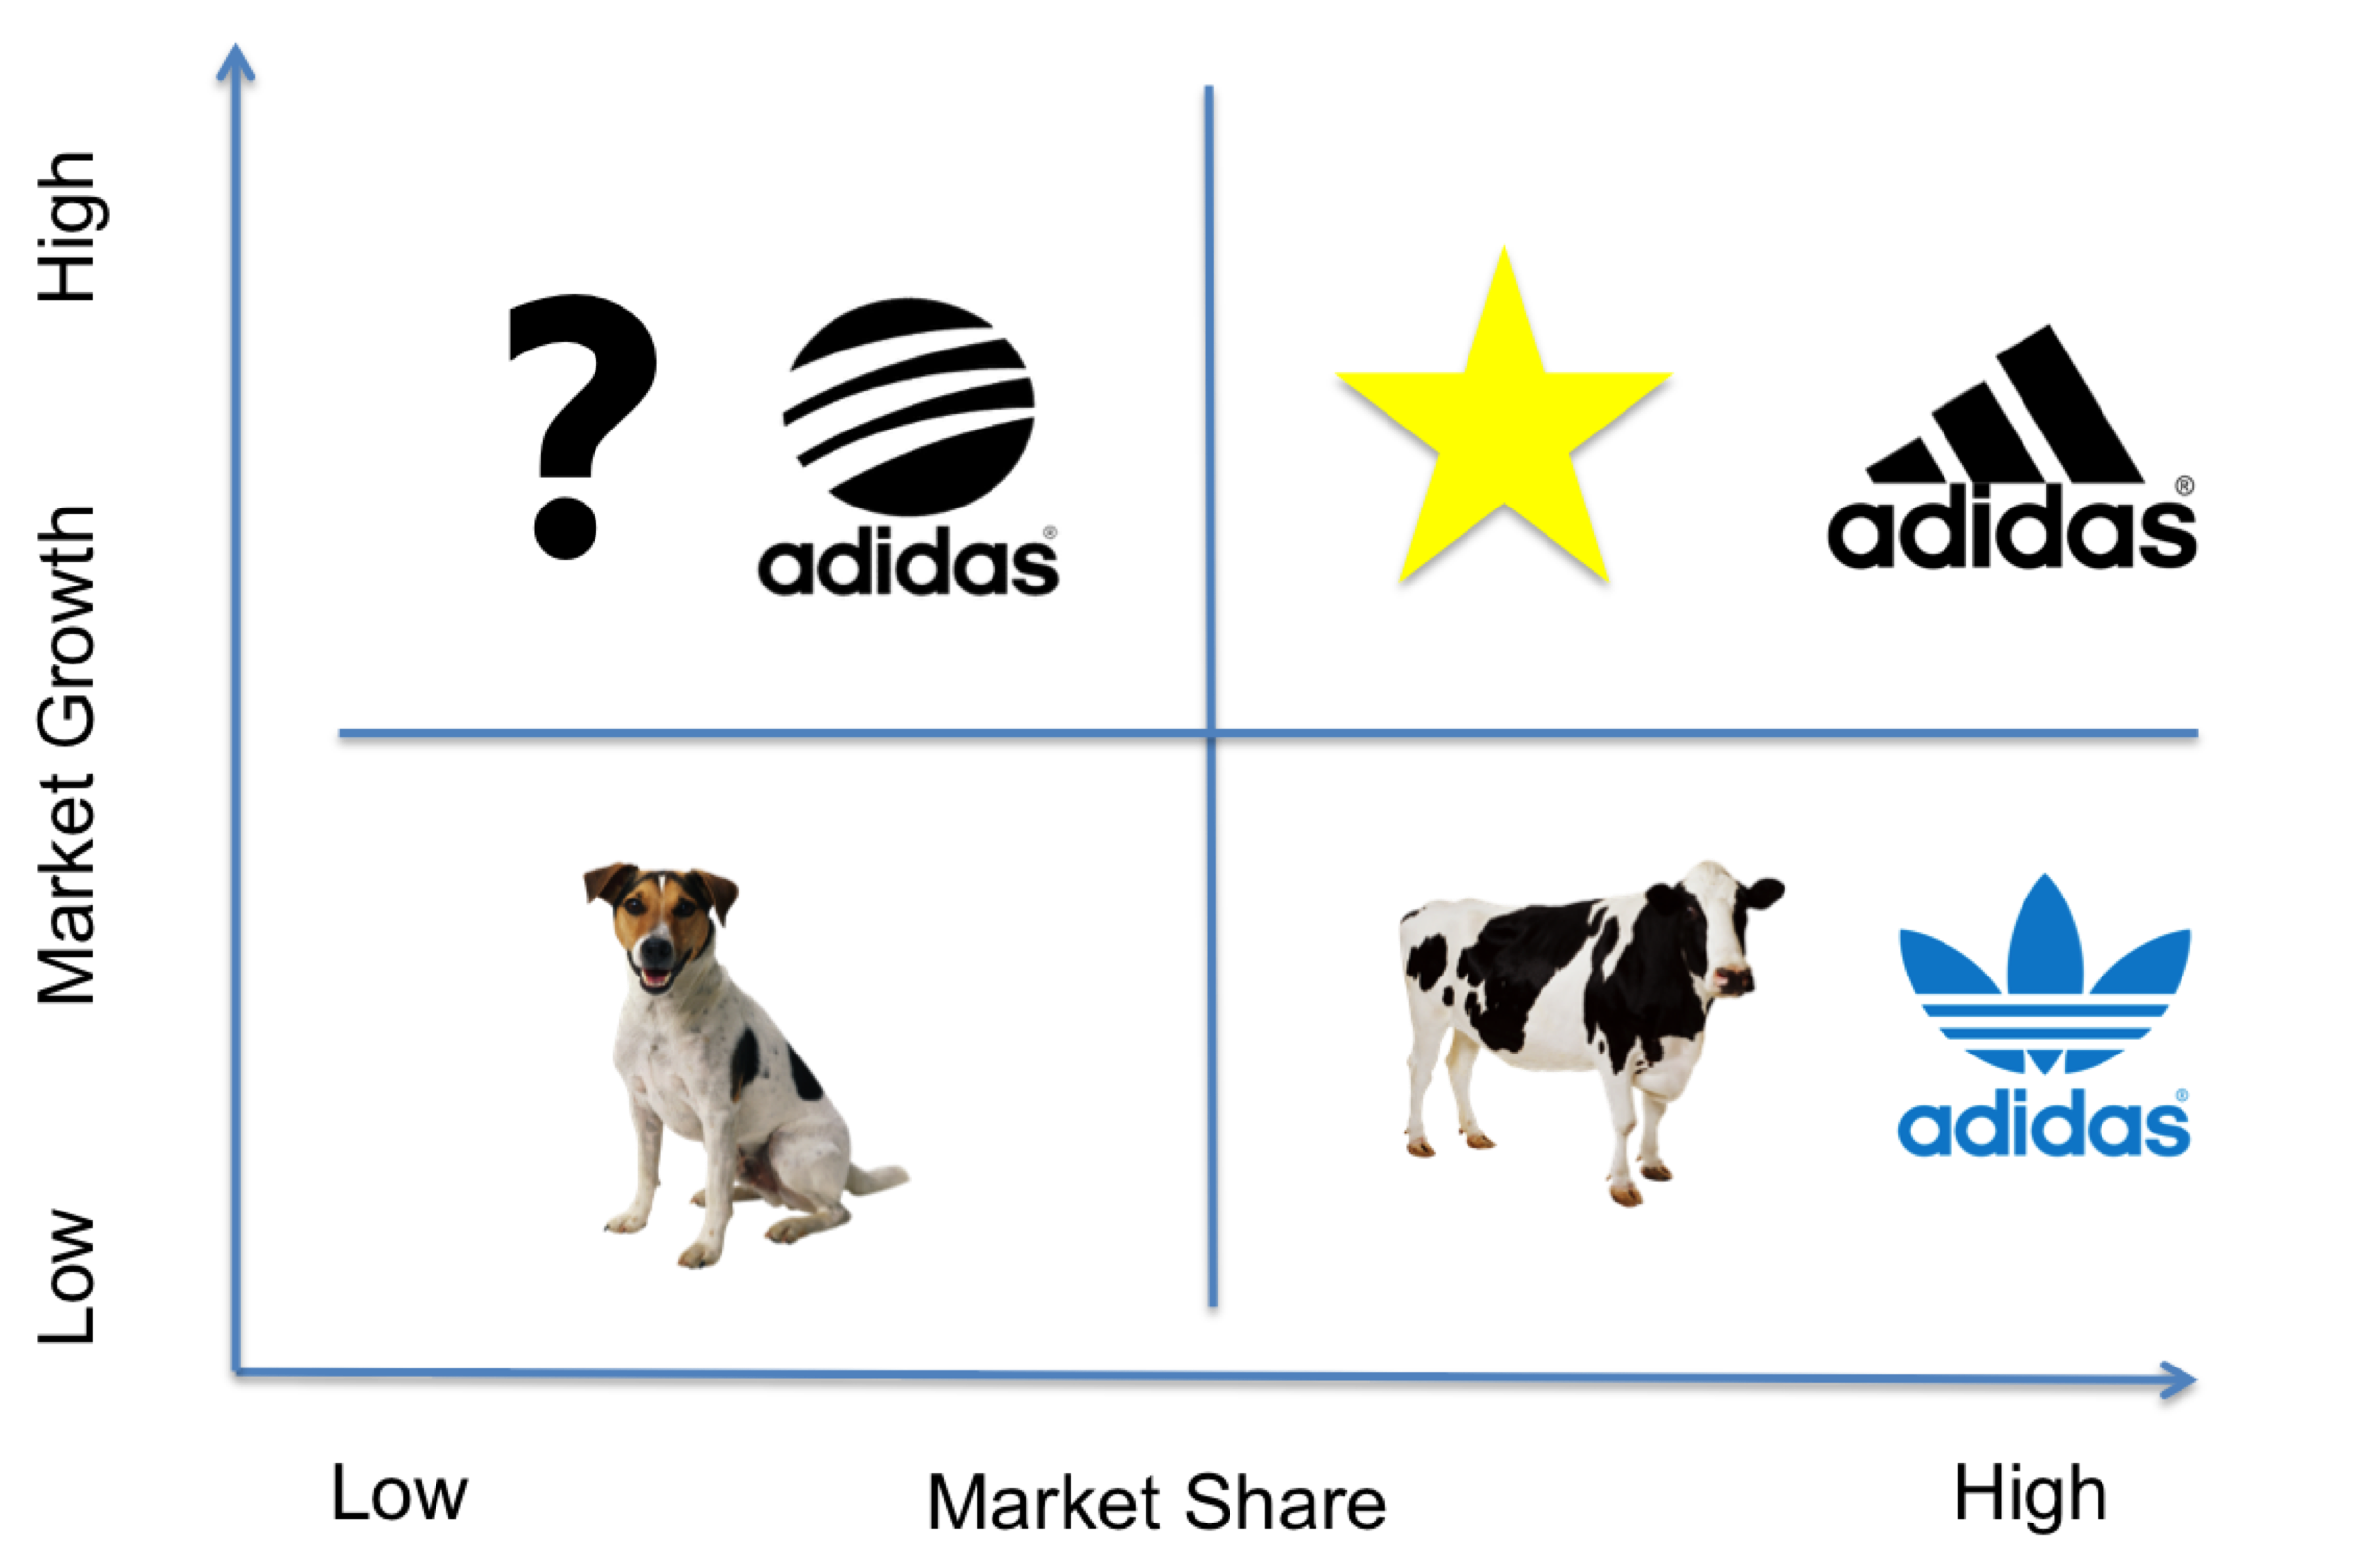 bcg of adidas Adidas bcg 2010 final - download as word doc (doc / docx), pdf file (pdf),  text file (txt) or read online.